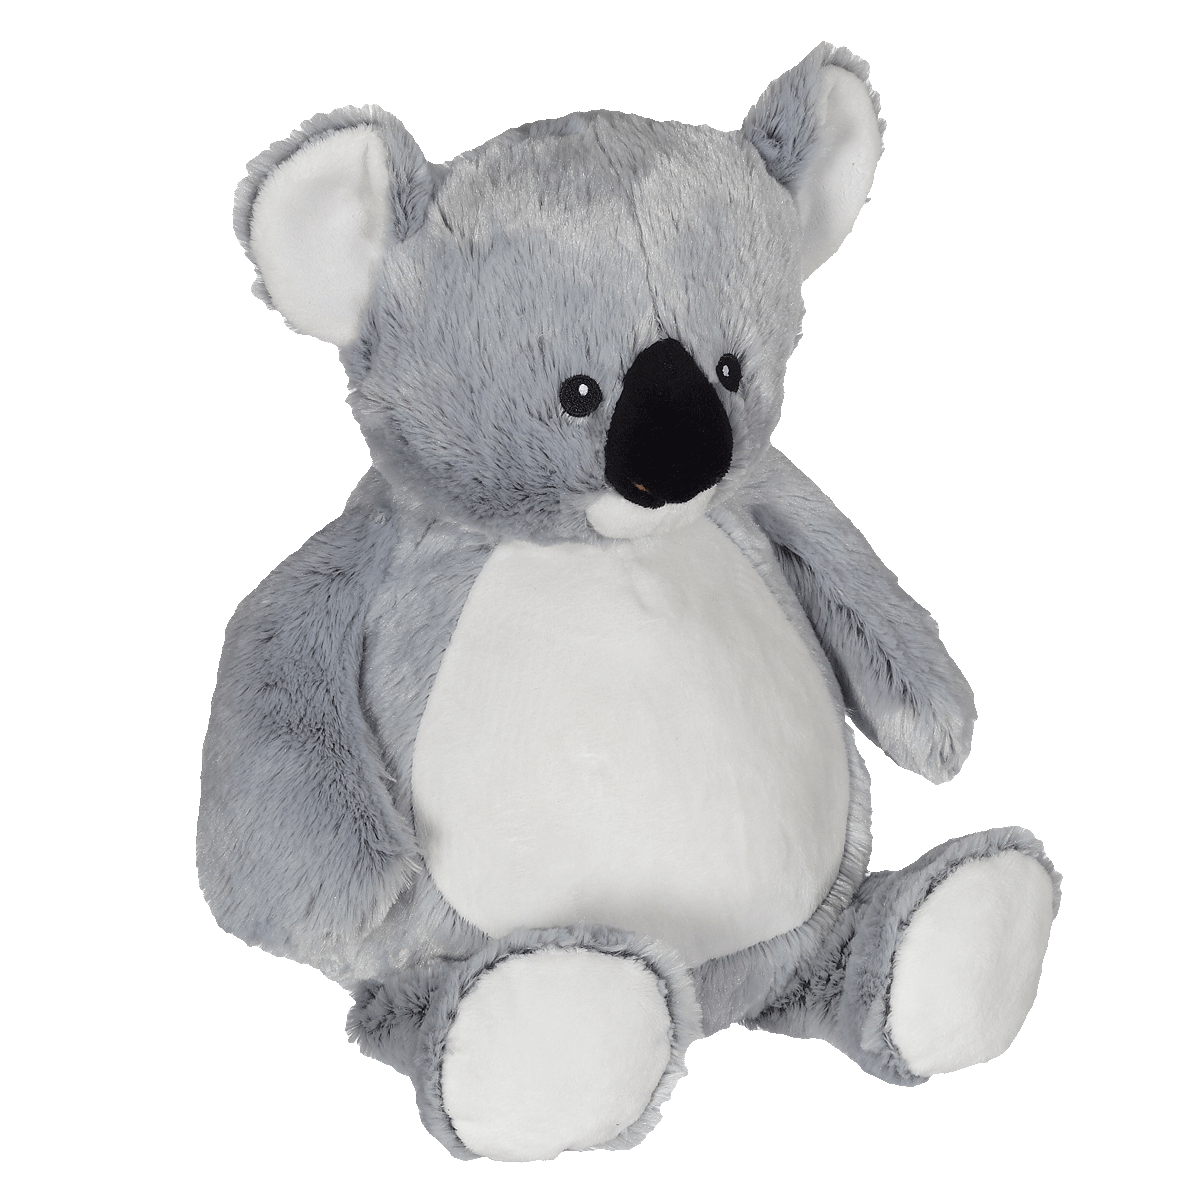 Personalised Teddy Bear - Kory Koala Buddy 16 Inch - Teddie & Lane